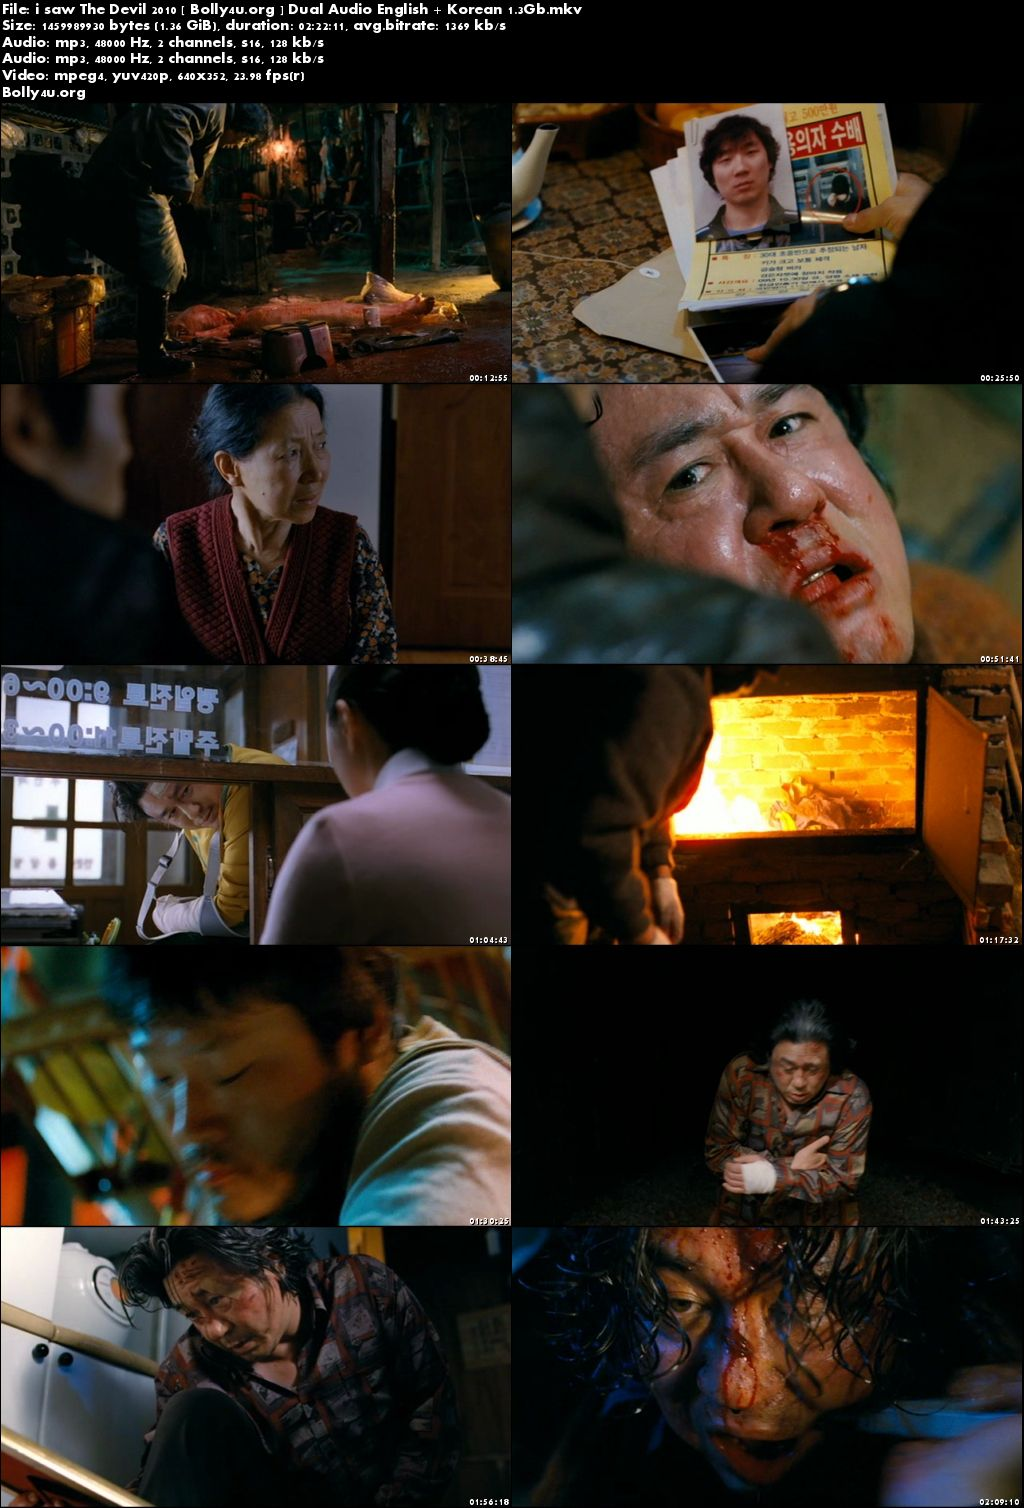 I Saw The Devil 2010 DVDRip 400MB English Korean Dual Audio 480p Download